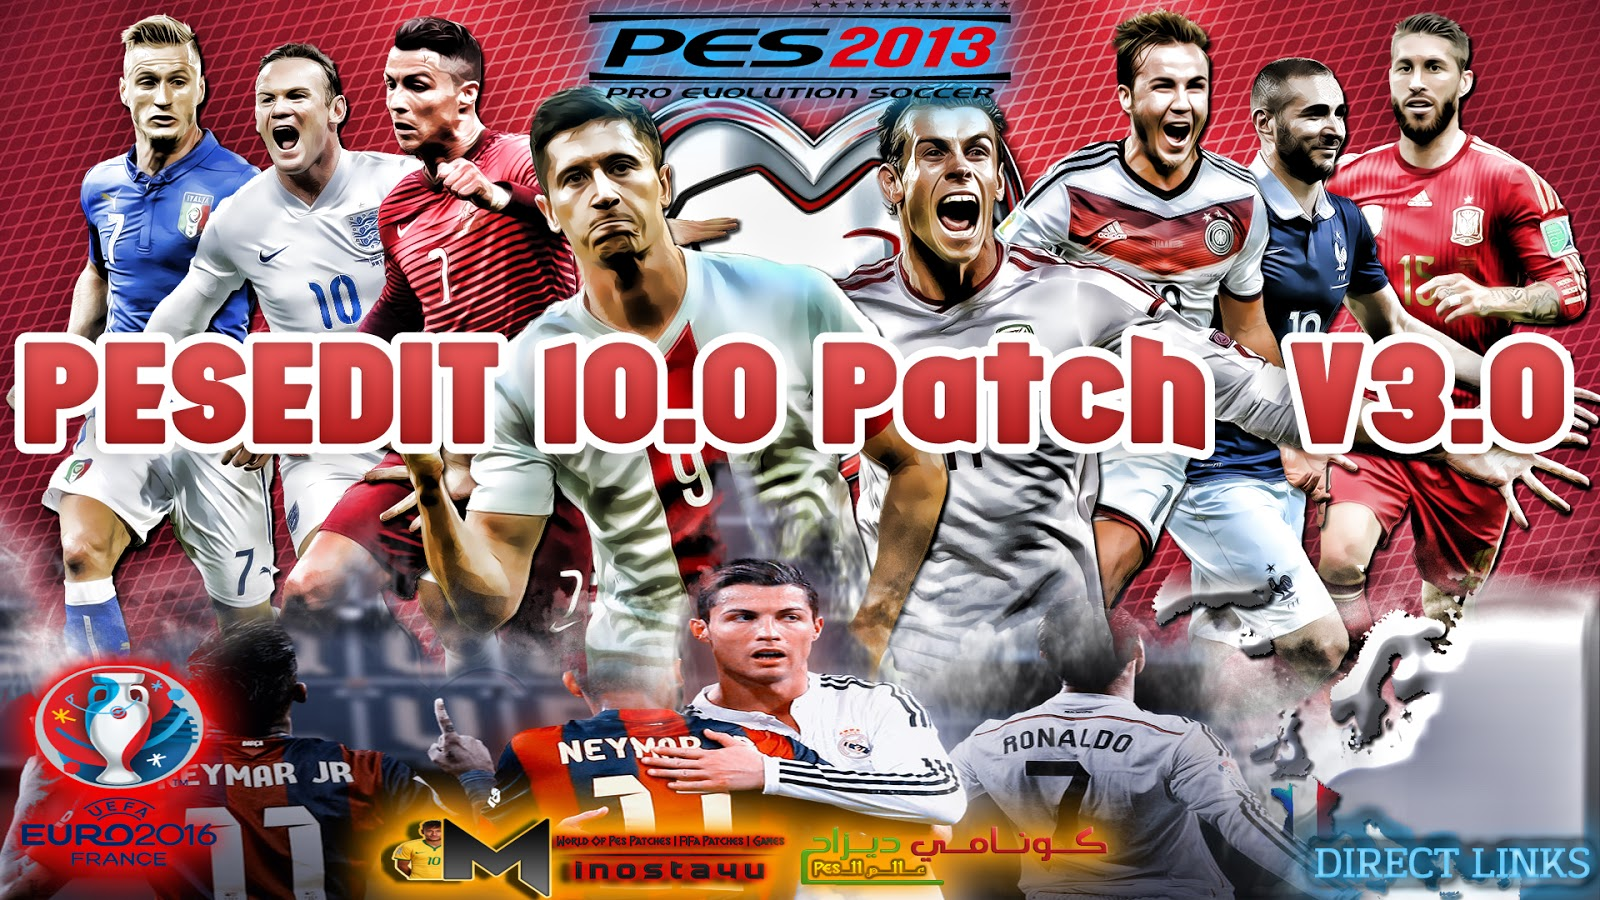 Pespatchscom Pes Patch Edit Pesedit 2011 4 0 Fix 1 Jam Tangan Swatch Original 100  Yes4007 Go Smokey Trendy Grey Read More A Blog About Pro Evolution Soccer Mods Patches Official Updates 2018 Konami